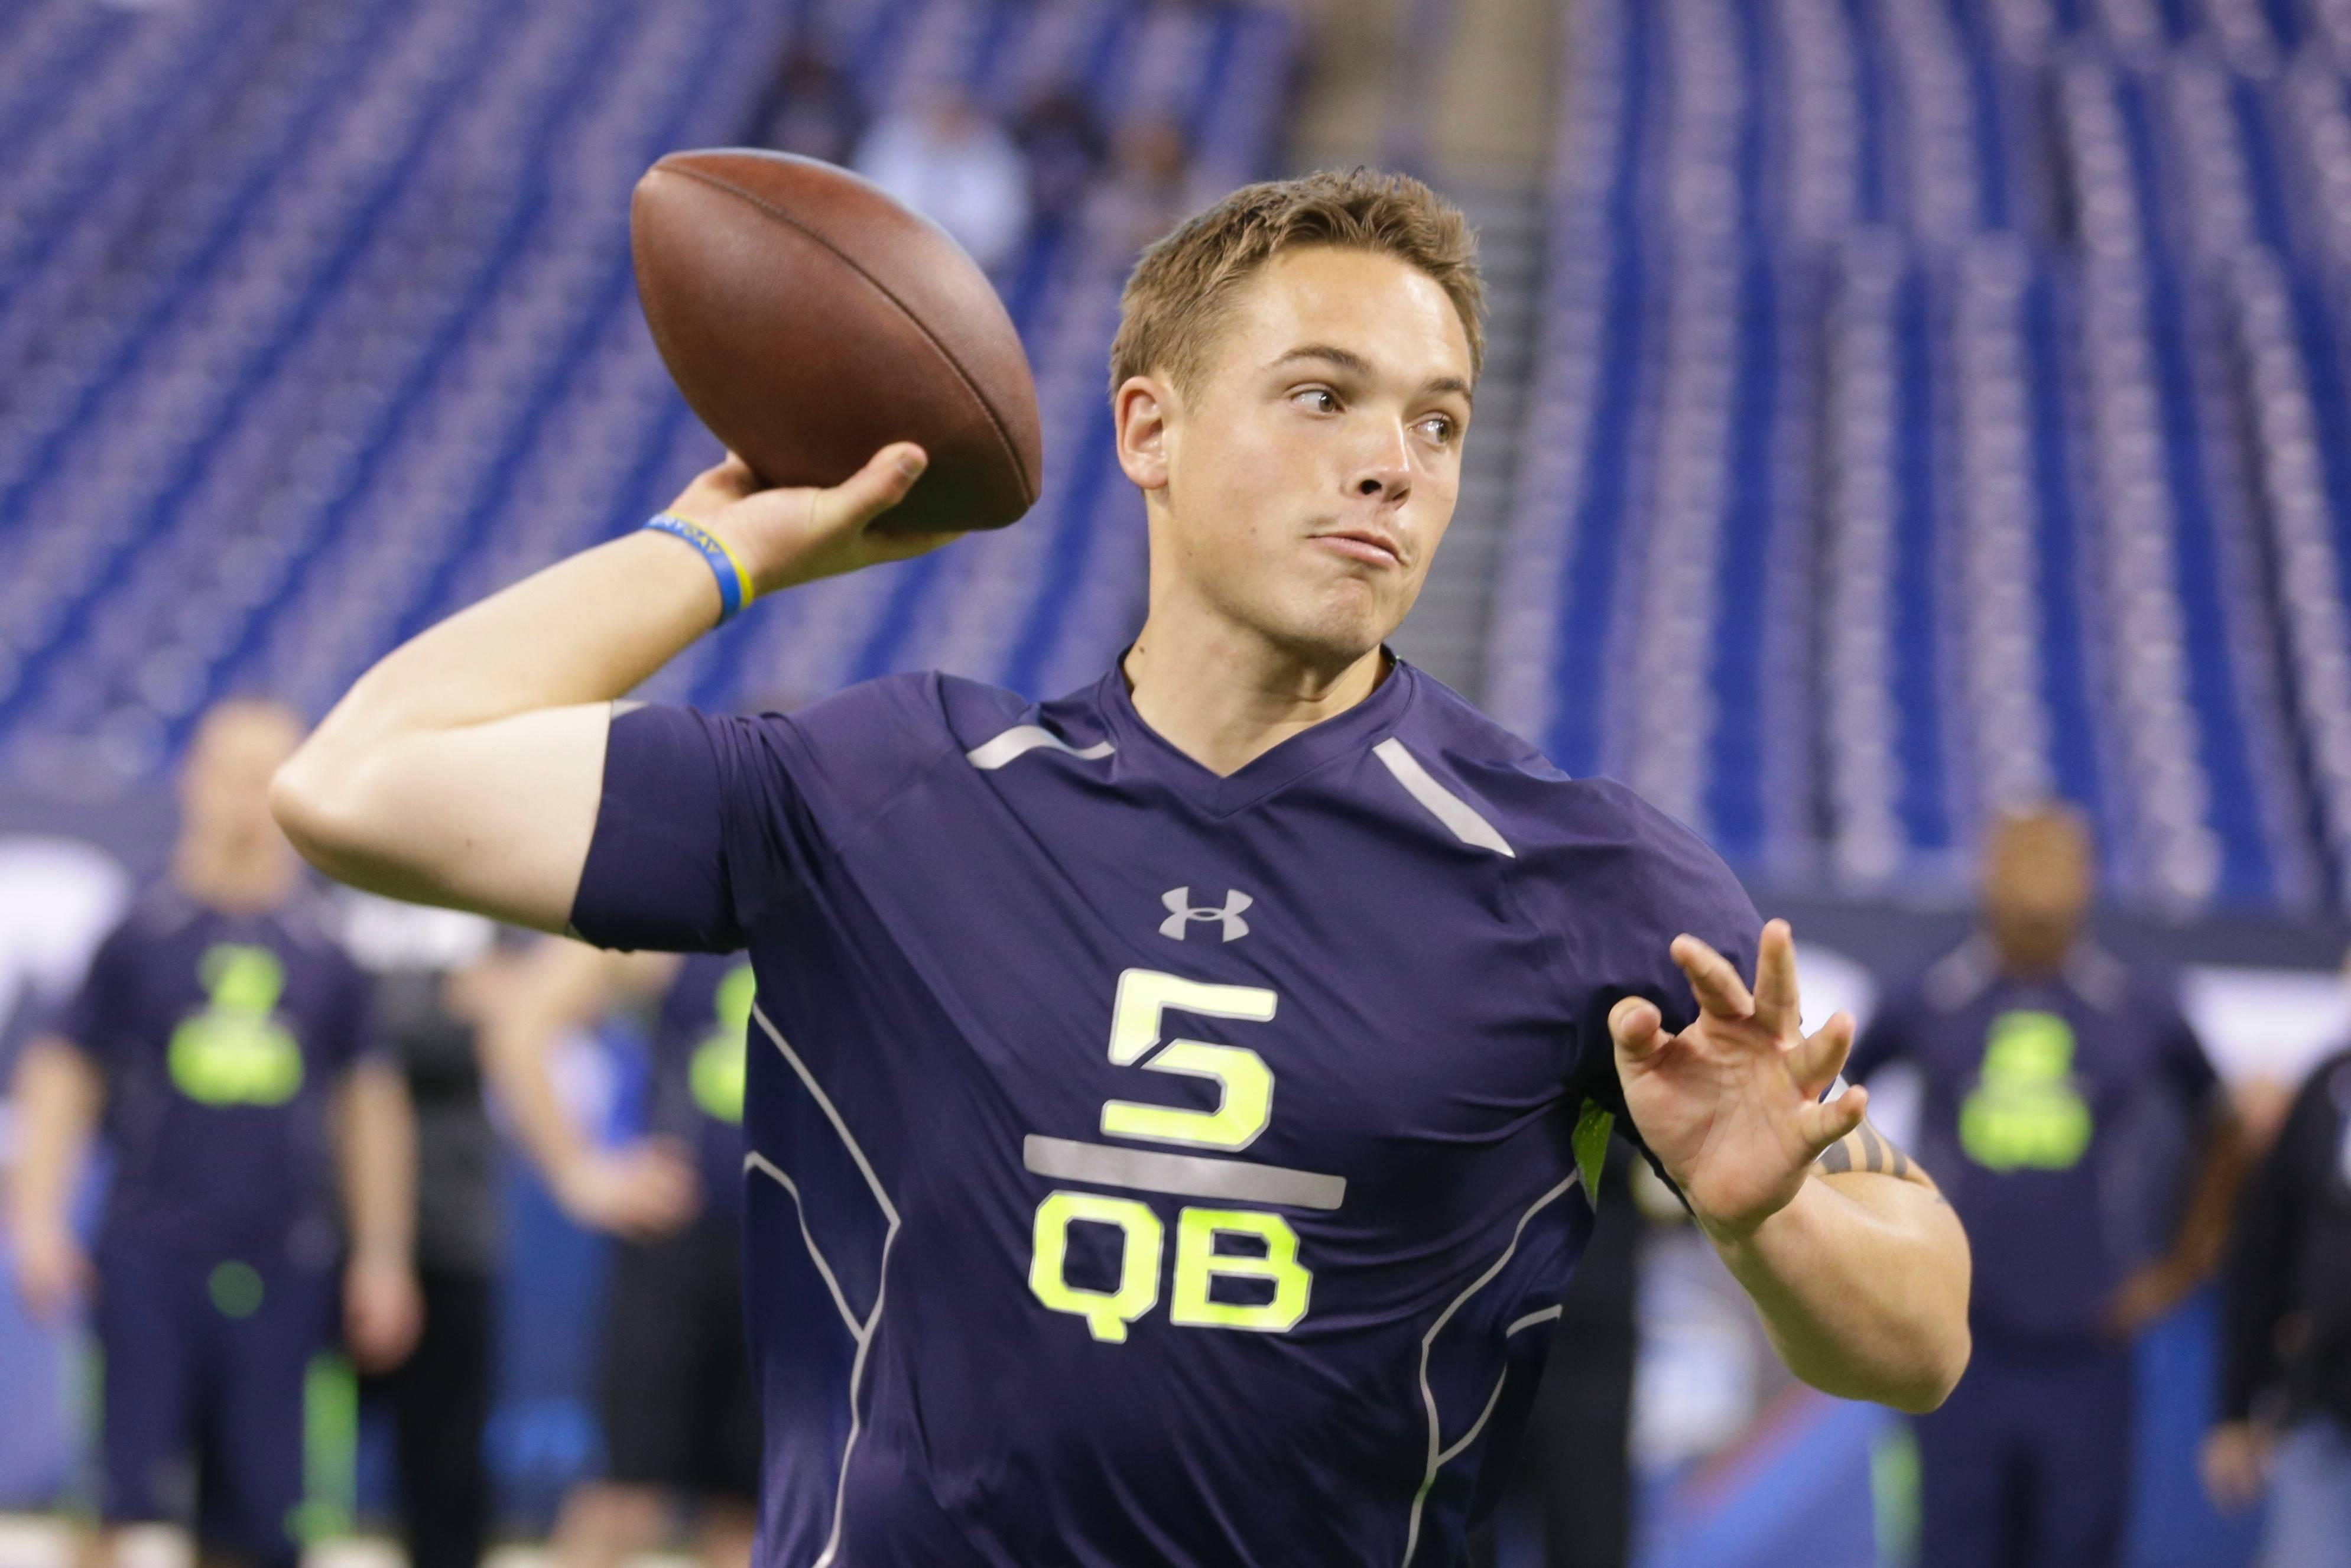 Sixth-round draft pick David Fales went 17-8 as a two-year starter at QB for San Jose State.